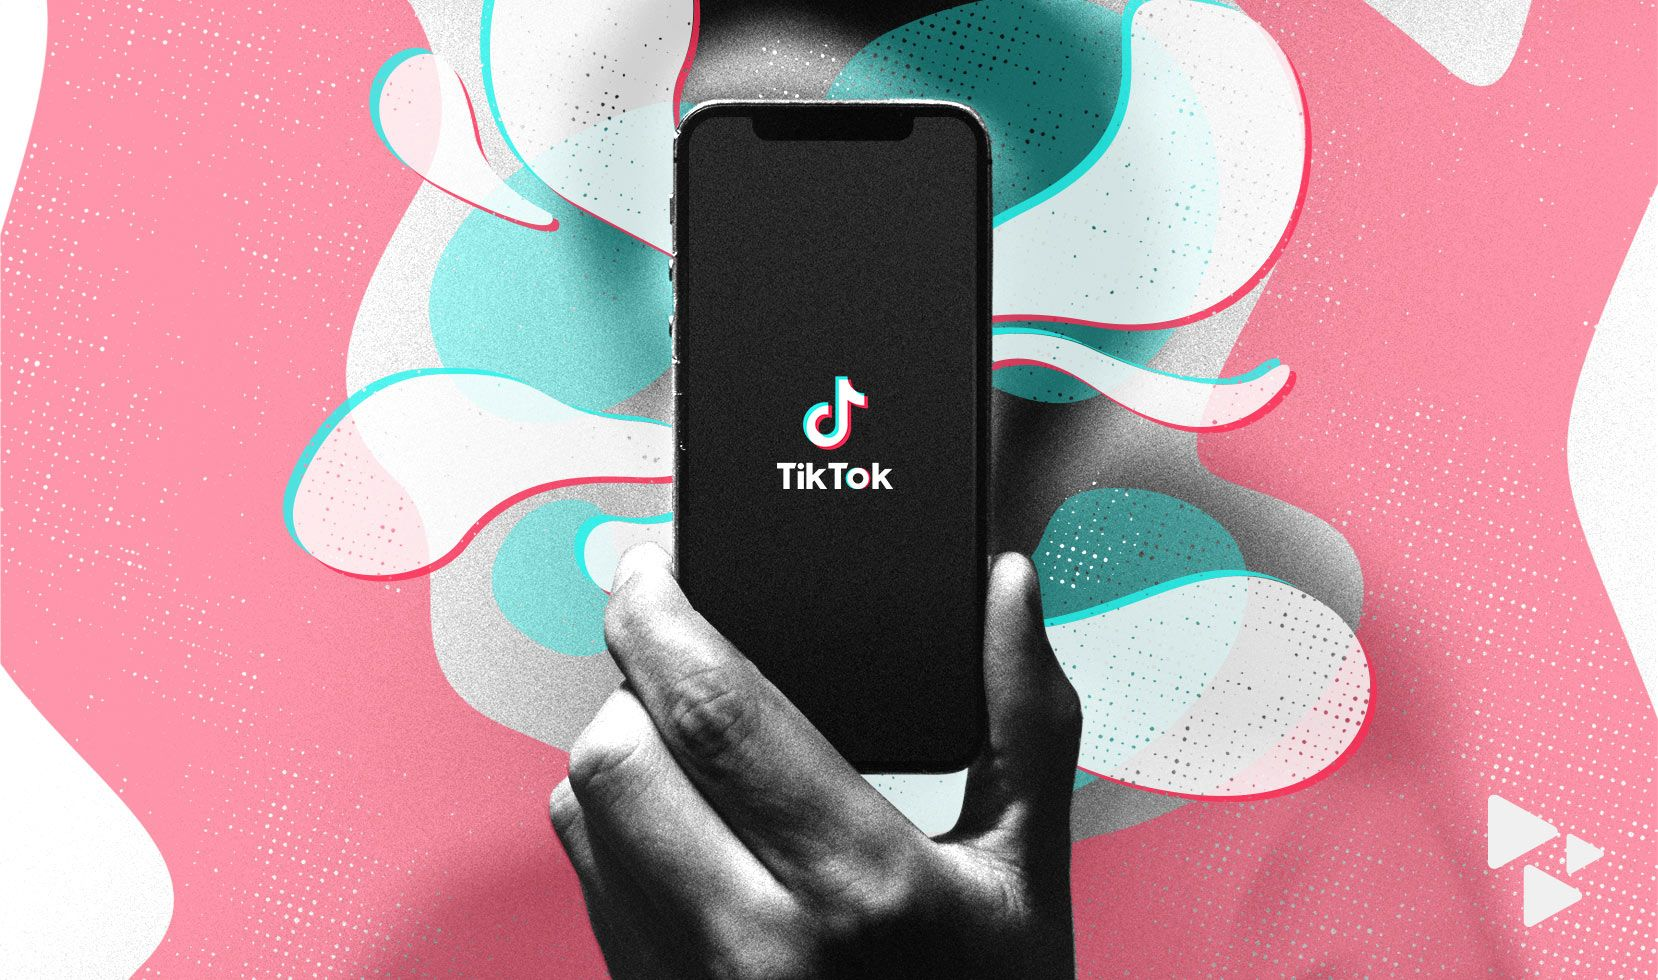 Given Its Popularity Many Musicians Are Wondering About Music Promotion On Tiktok Let S Explore 21 Ways To Promote Your Music Music Promotion Musician Music